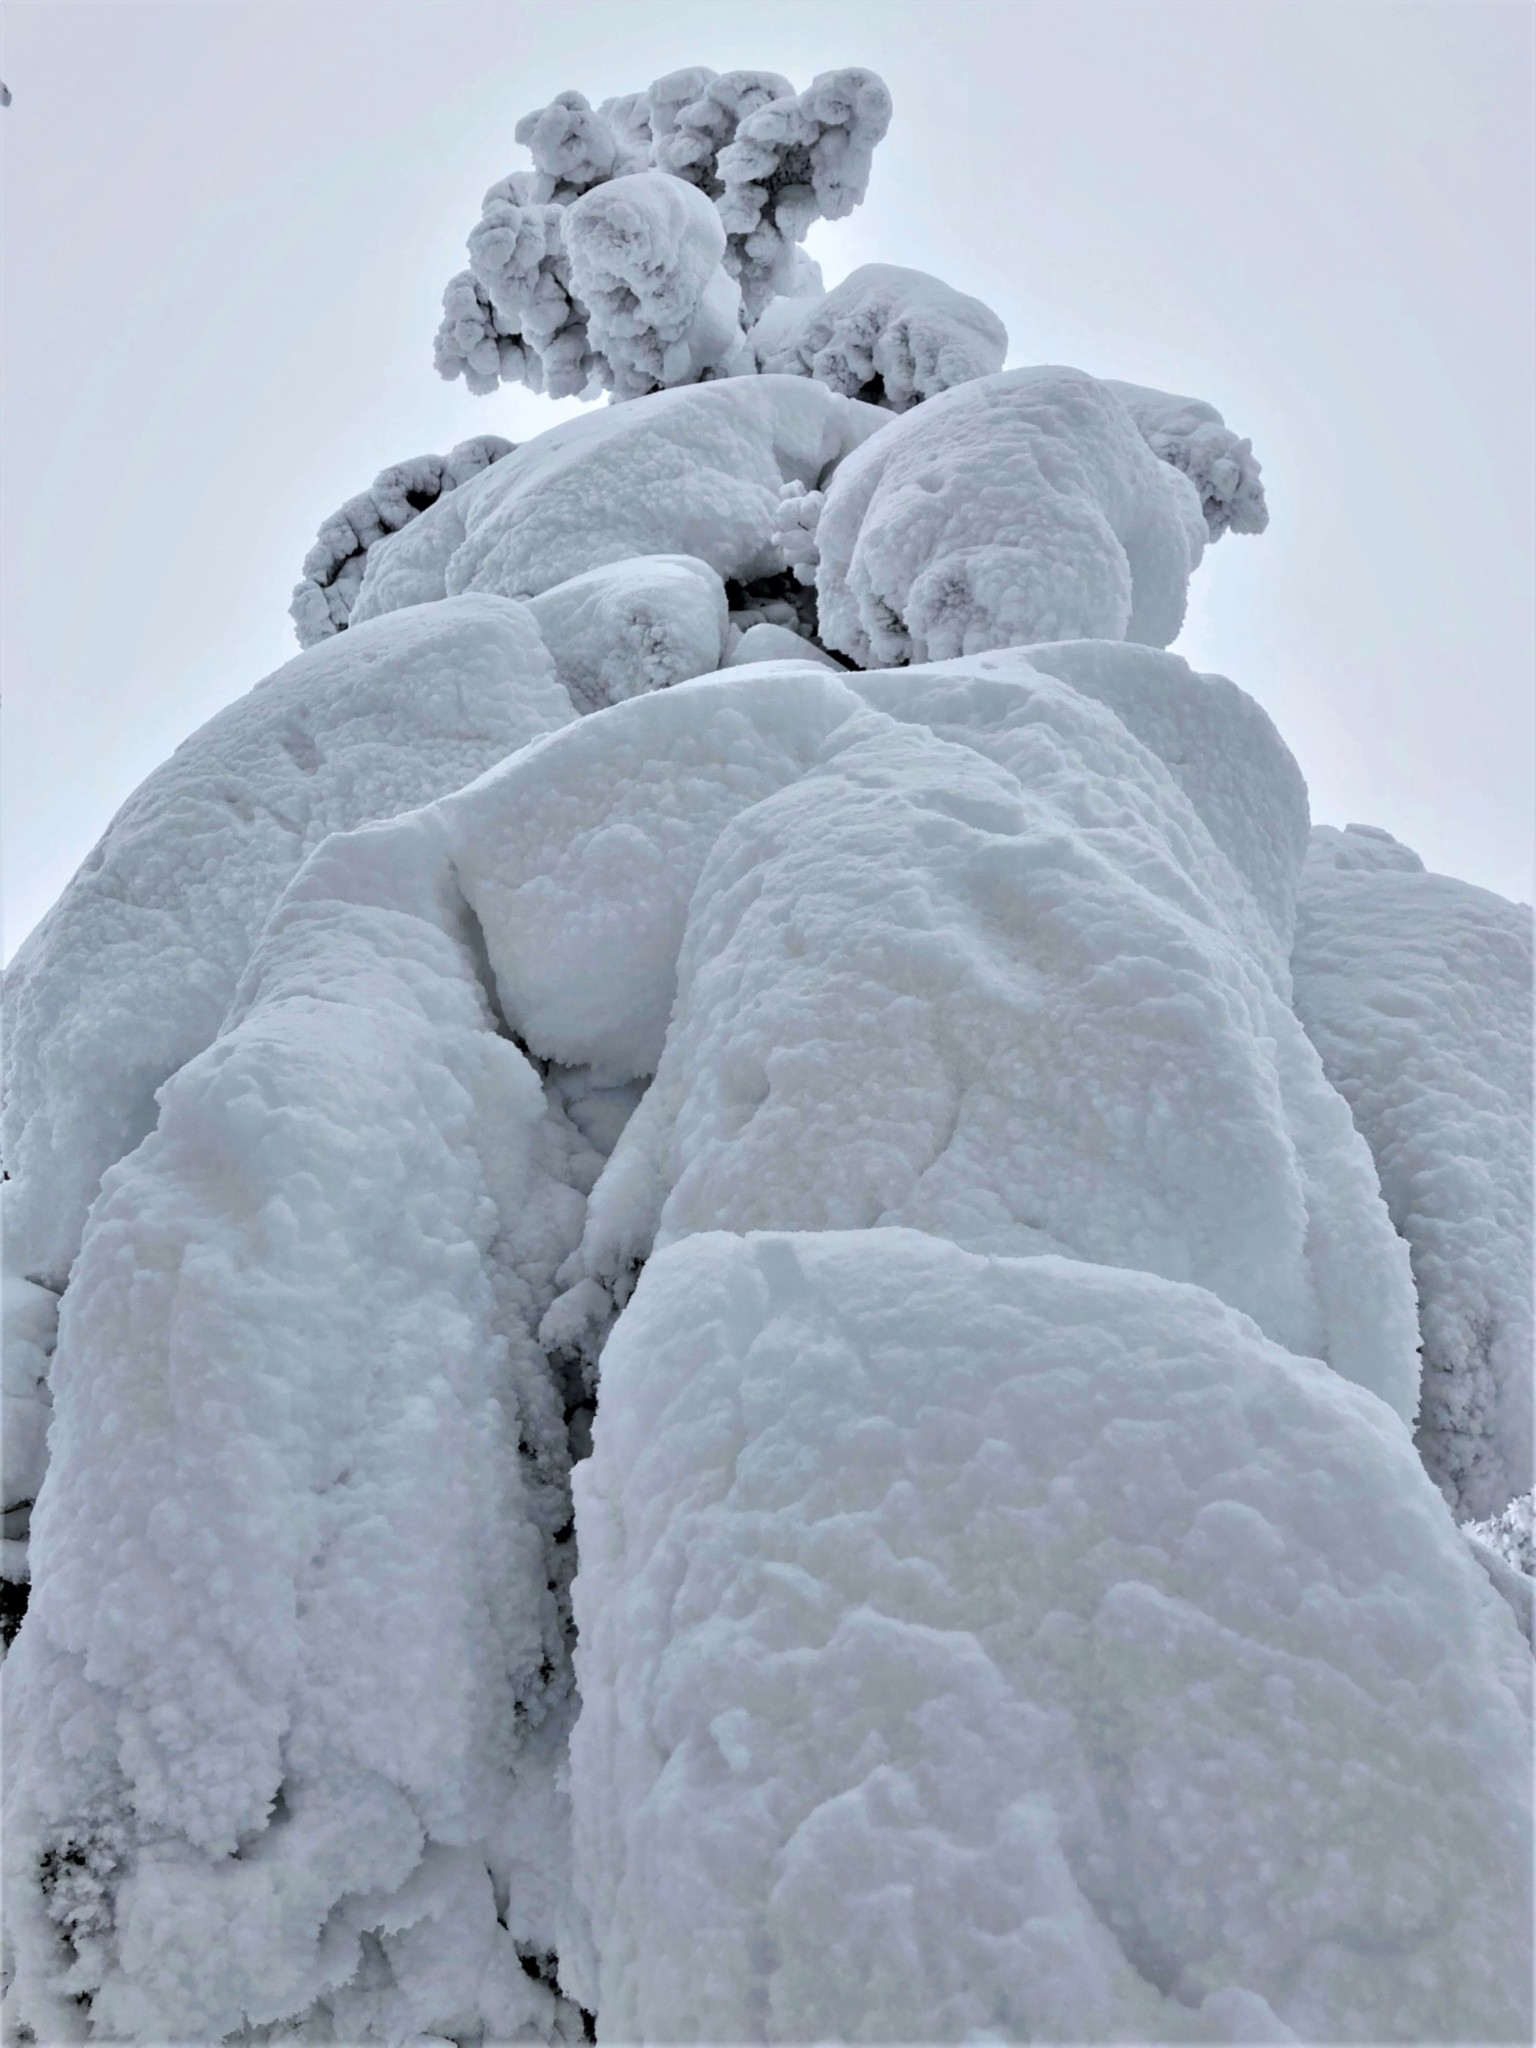 A gigantic snow monster standing on Mount Zao in Yamagata, Japan.